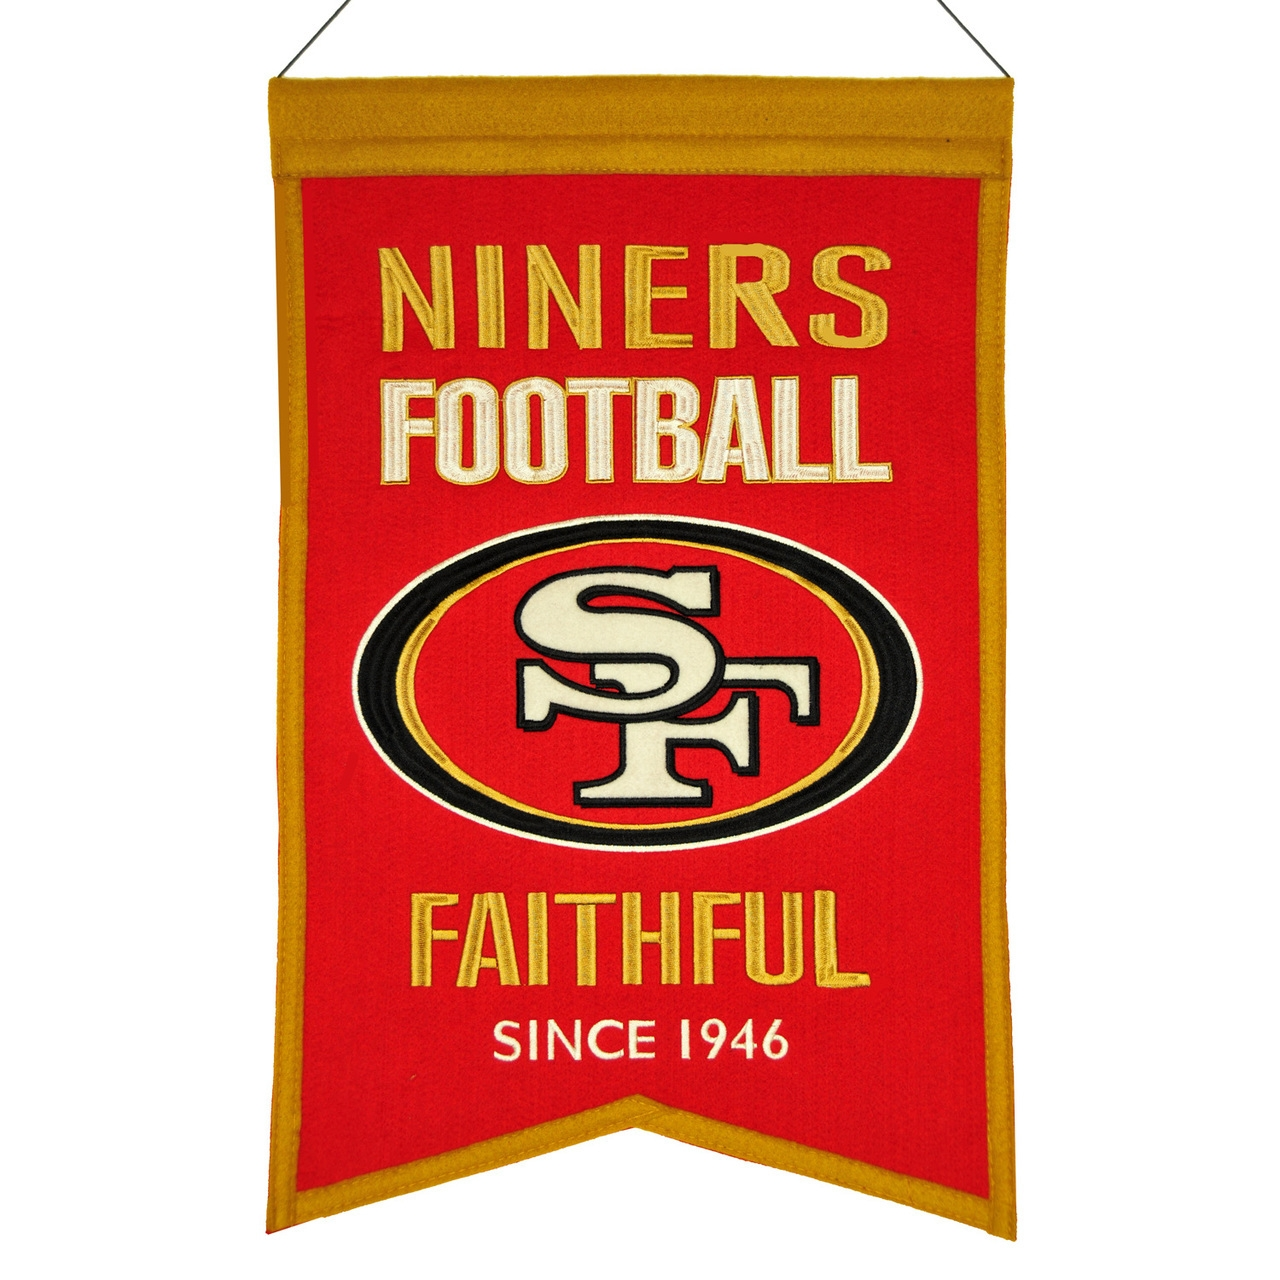 Football Nfl Football San Francisco 49ers Banners - 7408830111 - San Francisco 49ers Banner Wool Franchise 7408830111